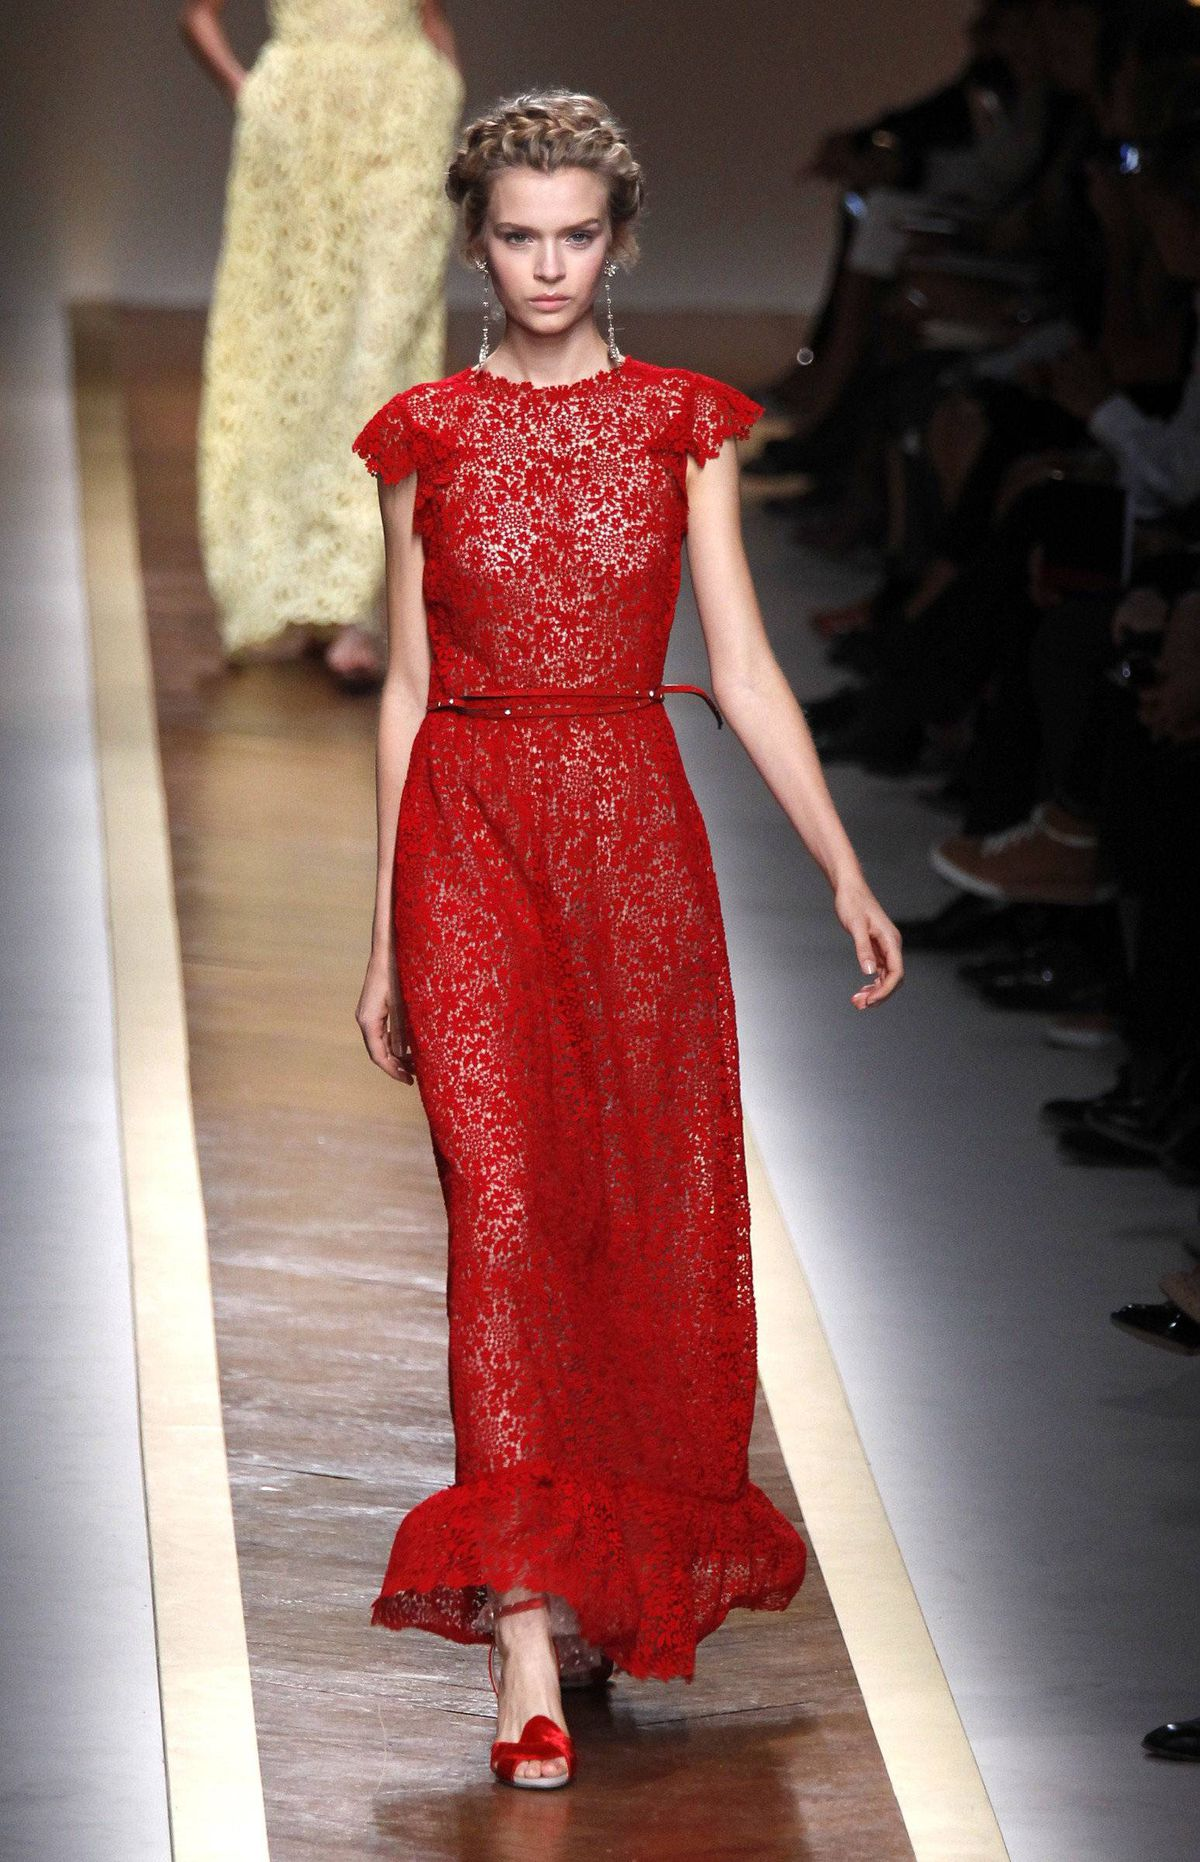 A Valentino collection is never complete without a smattering of red dresses. One short, strapless number – strong in its simplicity – was utterly minimalist in the context of the collection. More typical is this full-length frock. Awards season is right around the corner, after all, and the designers made sure to offer enough red-carpet variety.